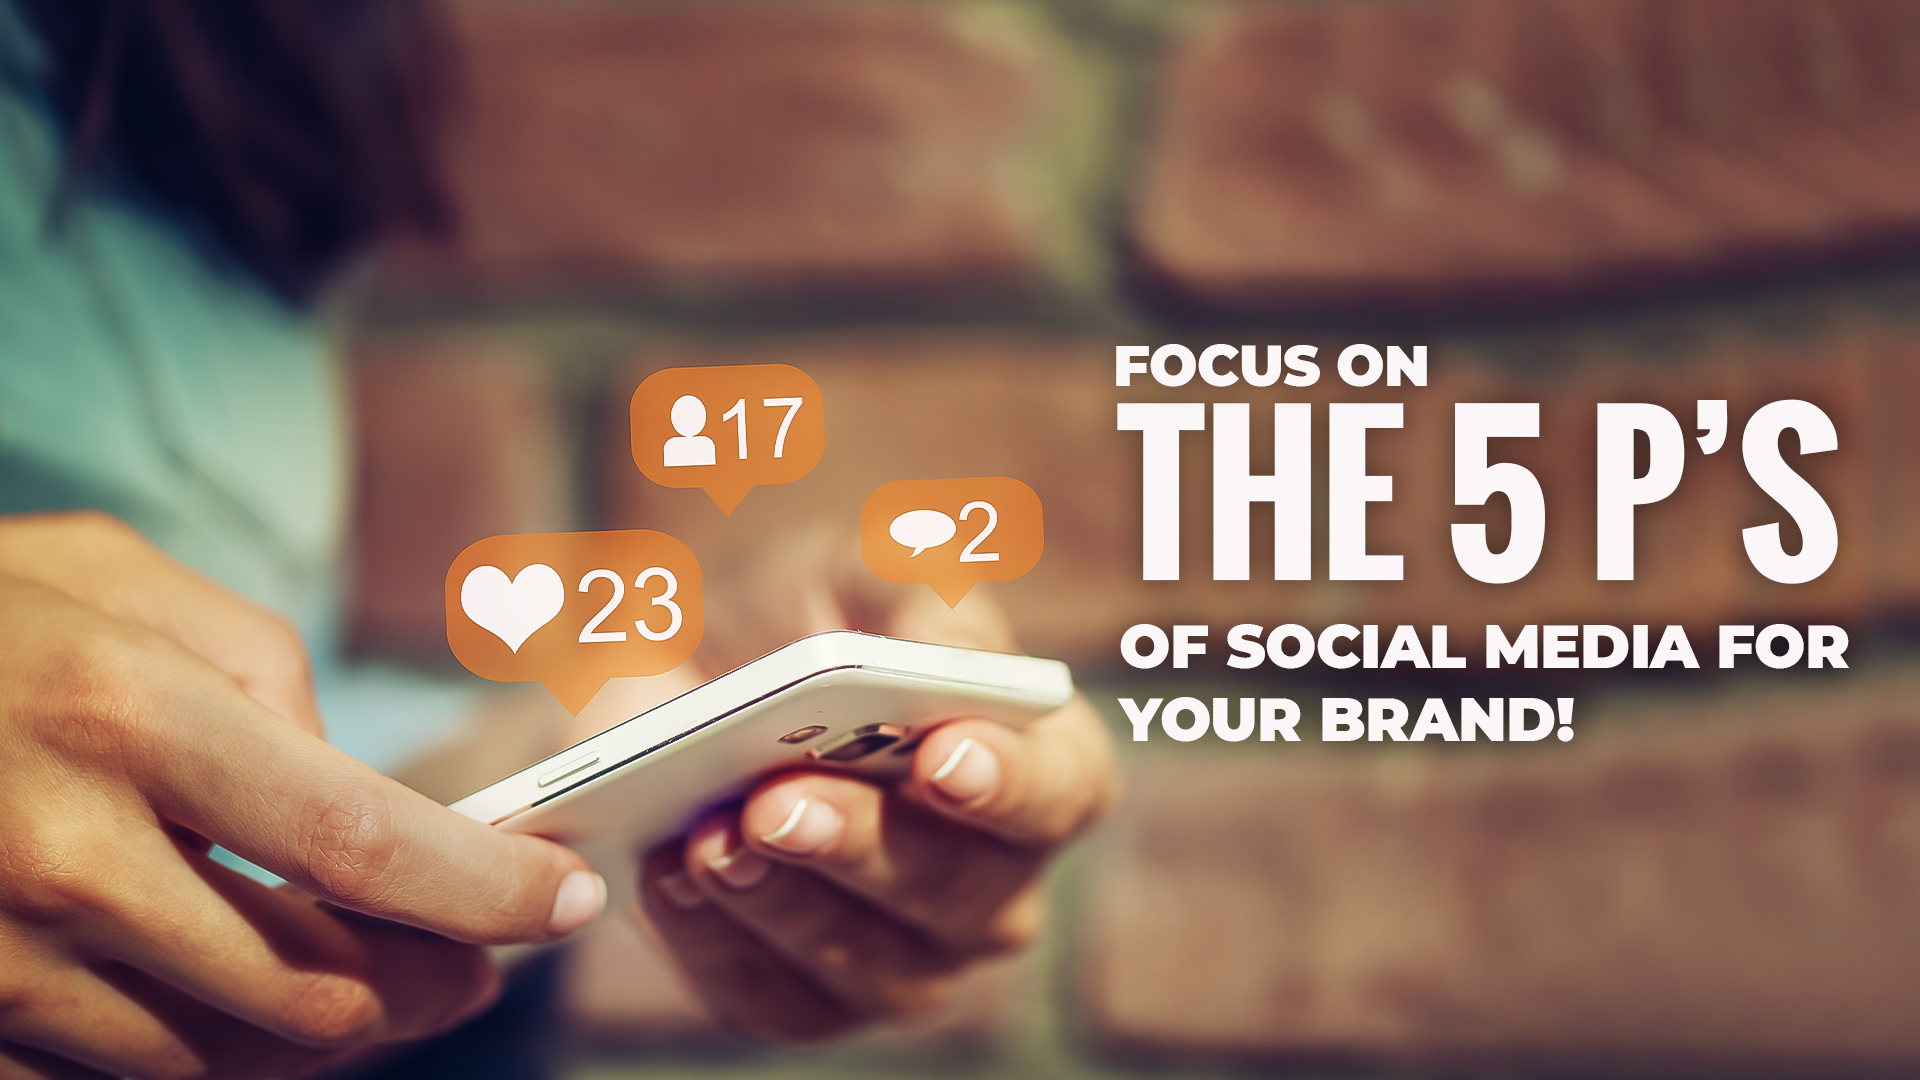 Focus on the 5 P's of Social Media for your Brand!